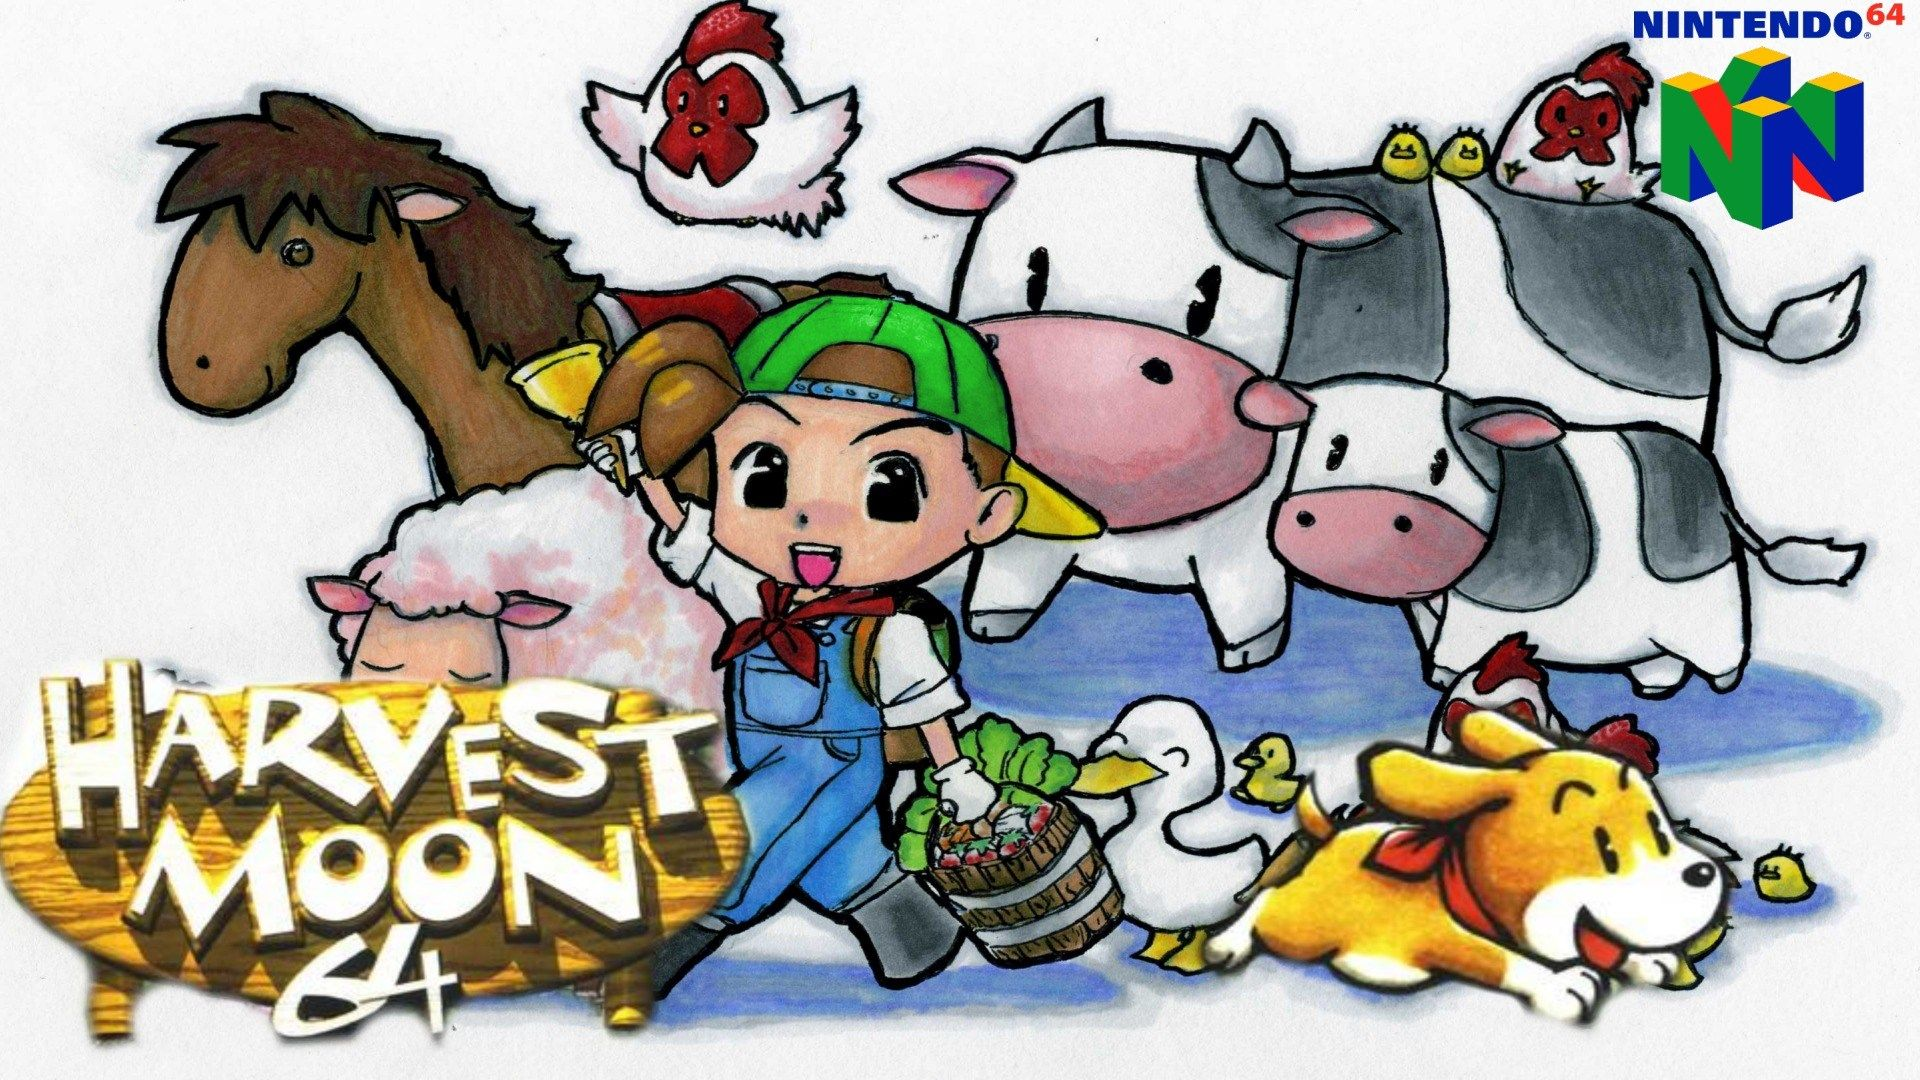 1920x1080 Hdq Images Harvest Moon 64 Harvest Moon Game Harvest Moon 64 Harvest Moon